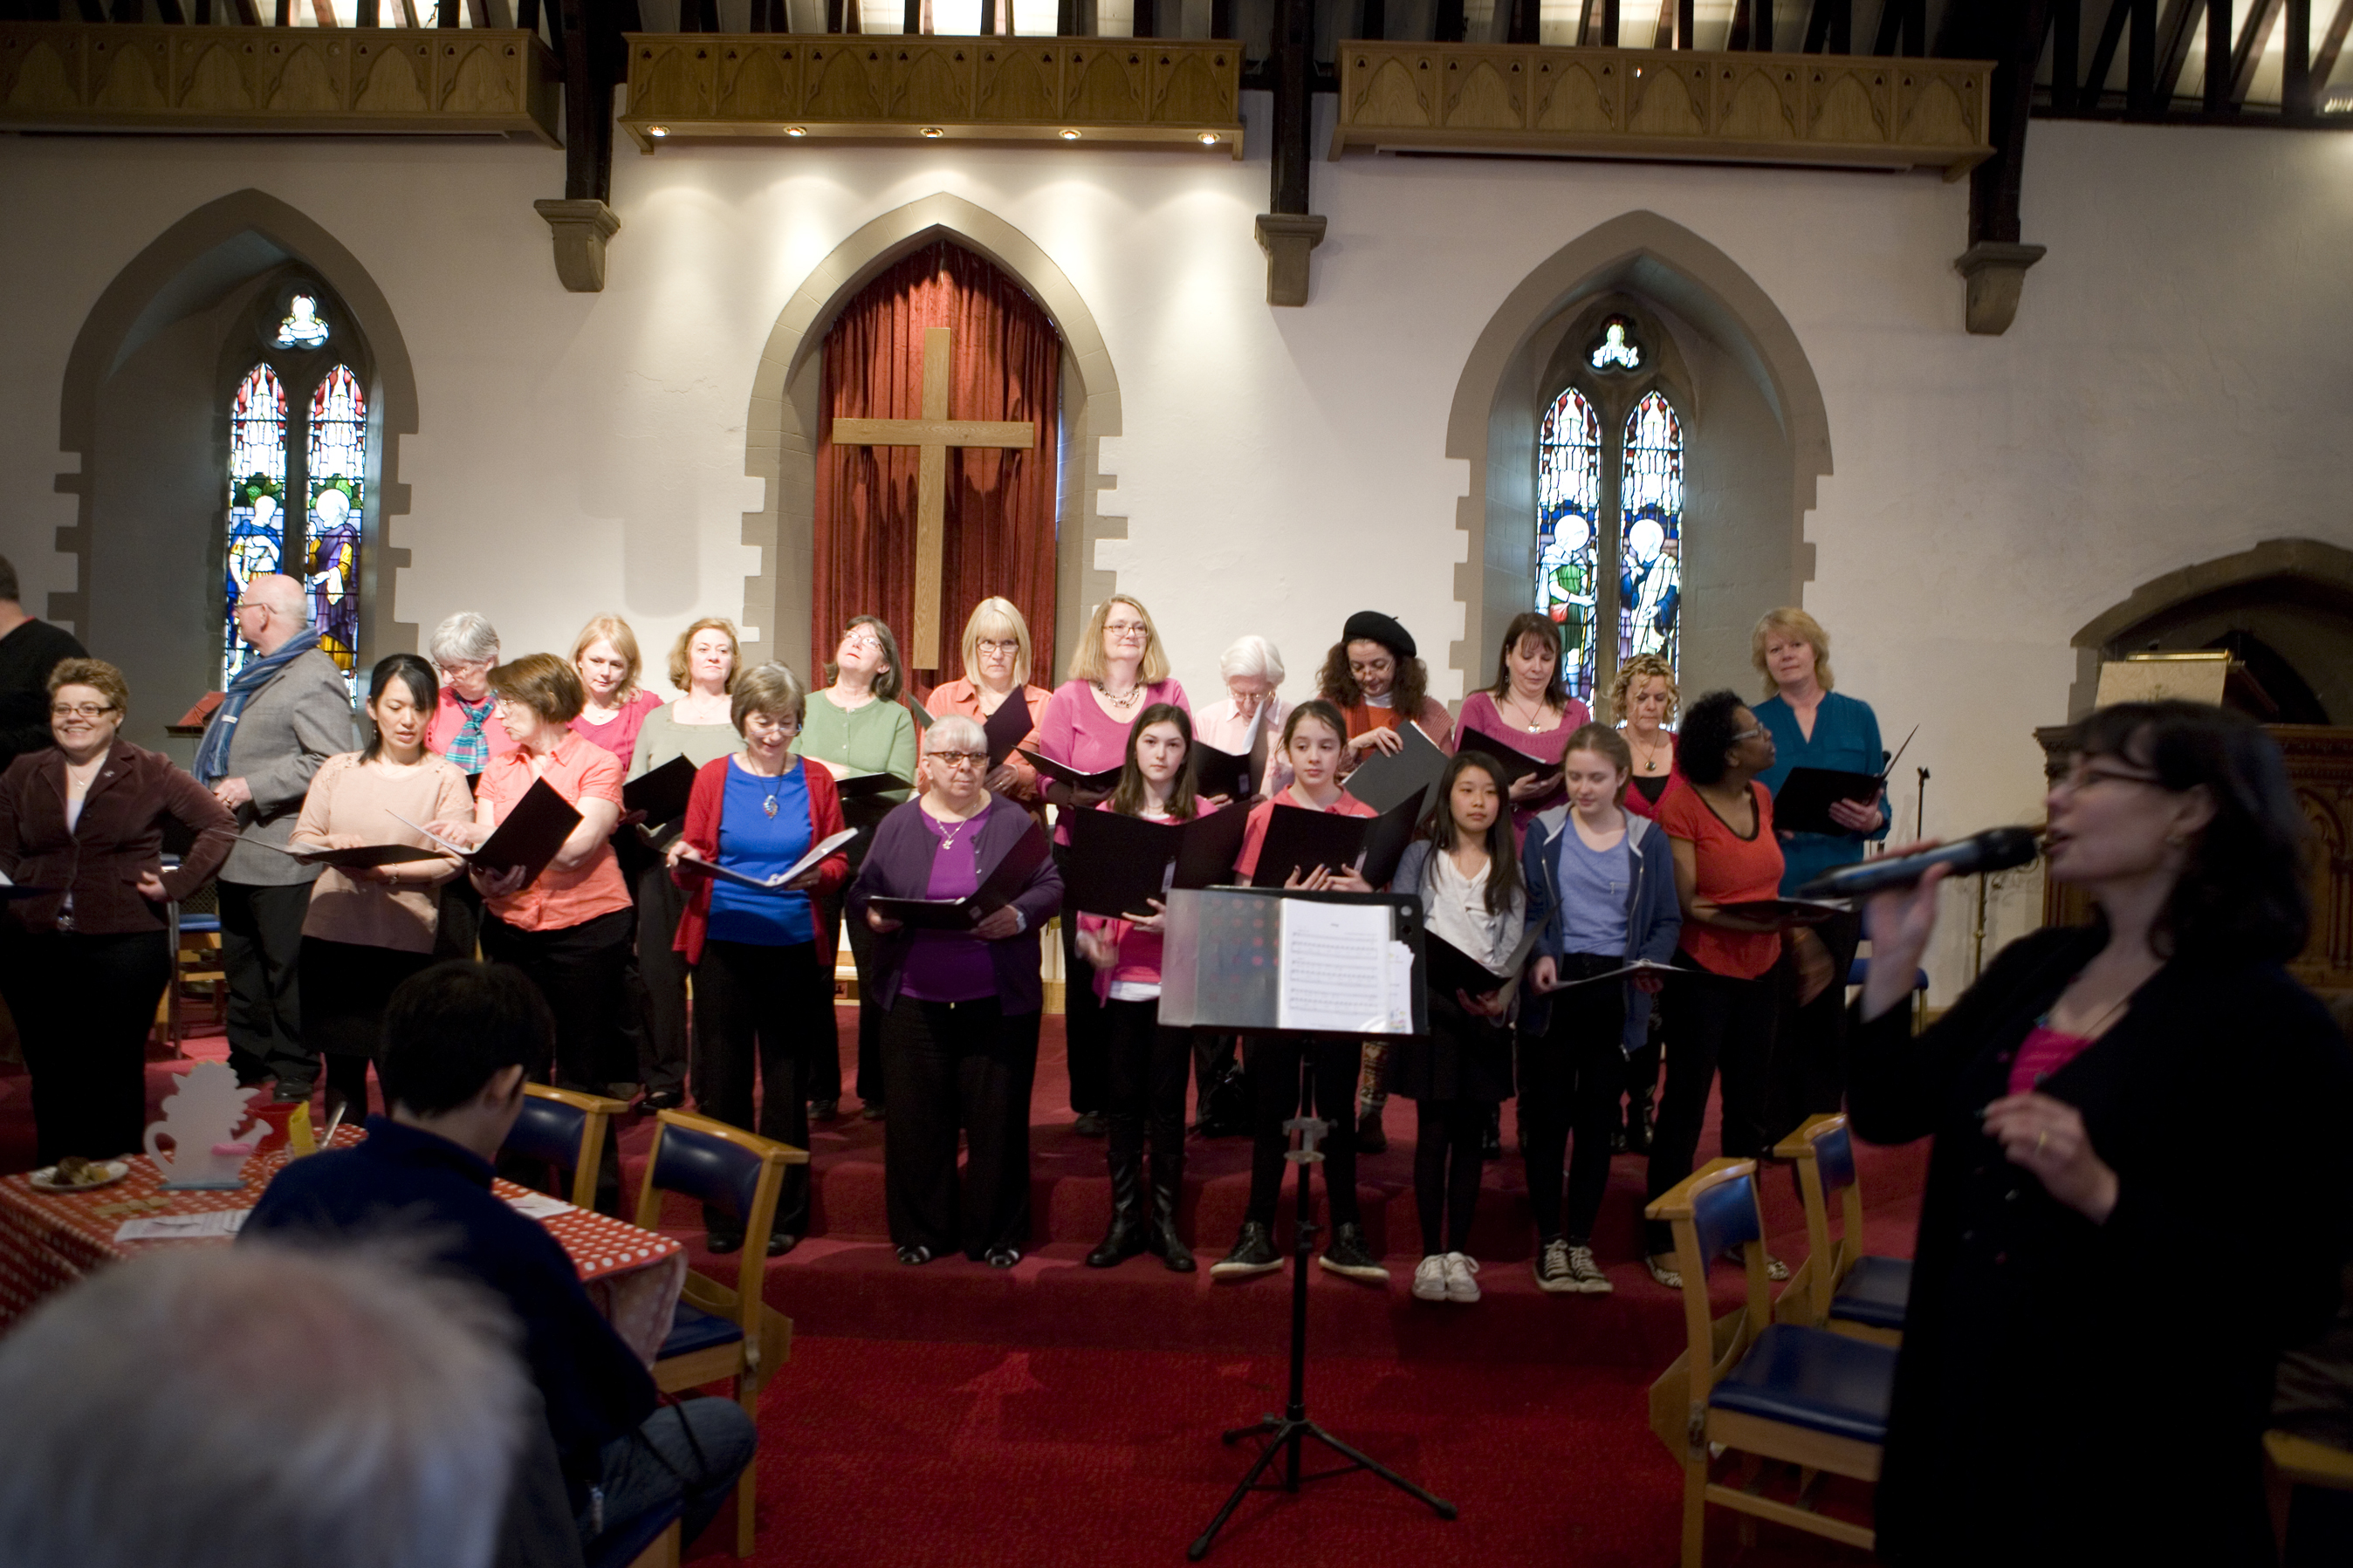 Christ Church Community Choir performs at the fair